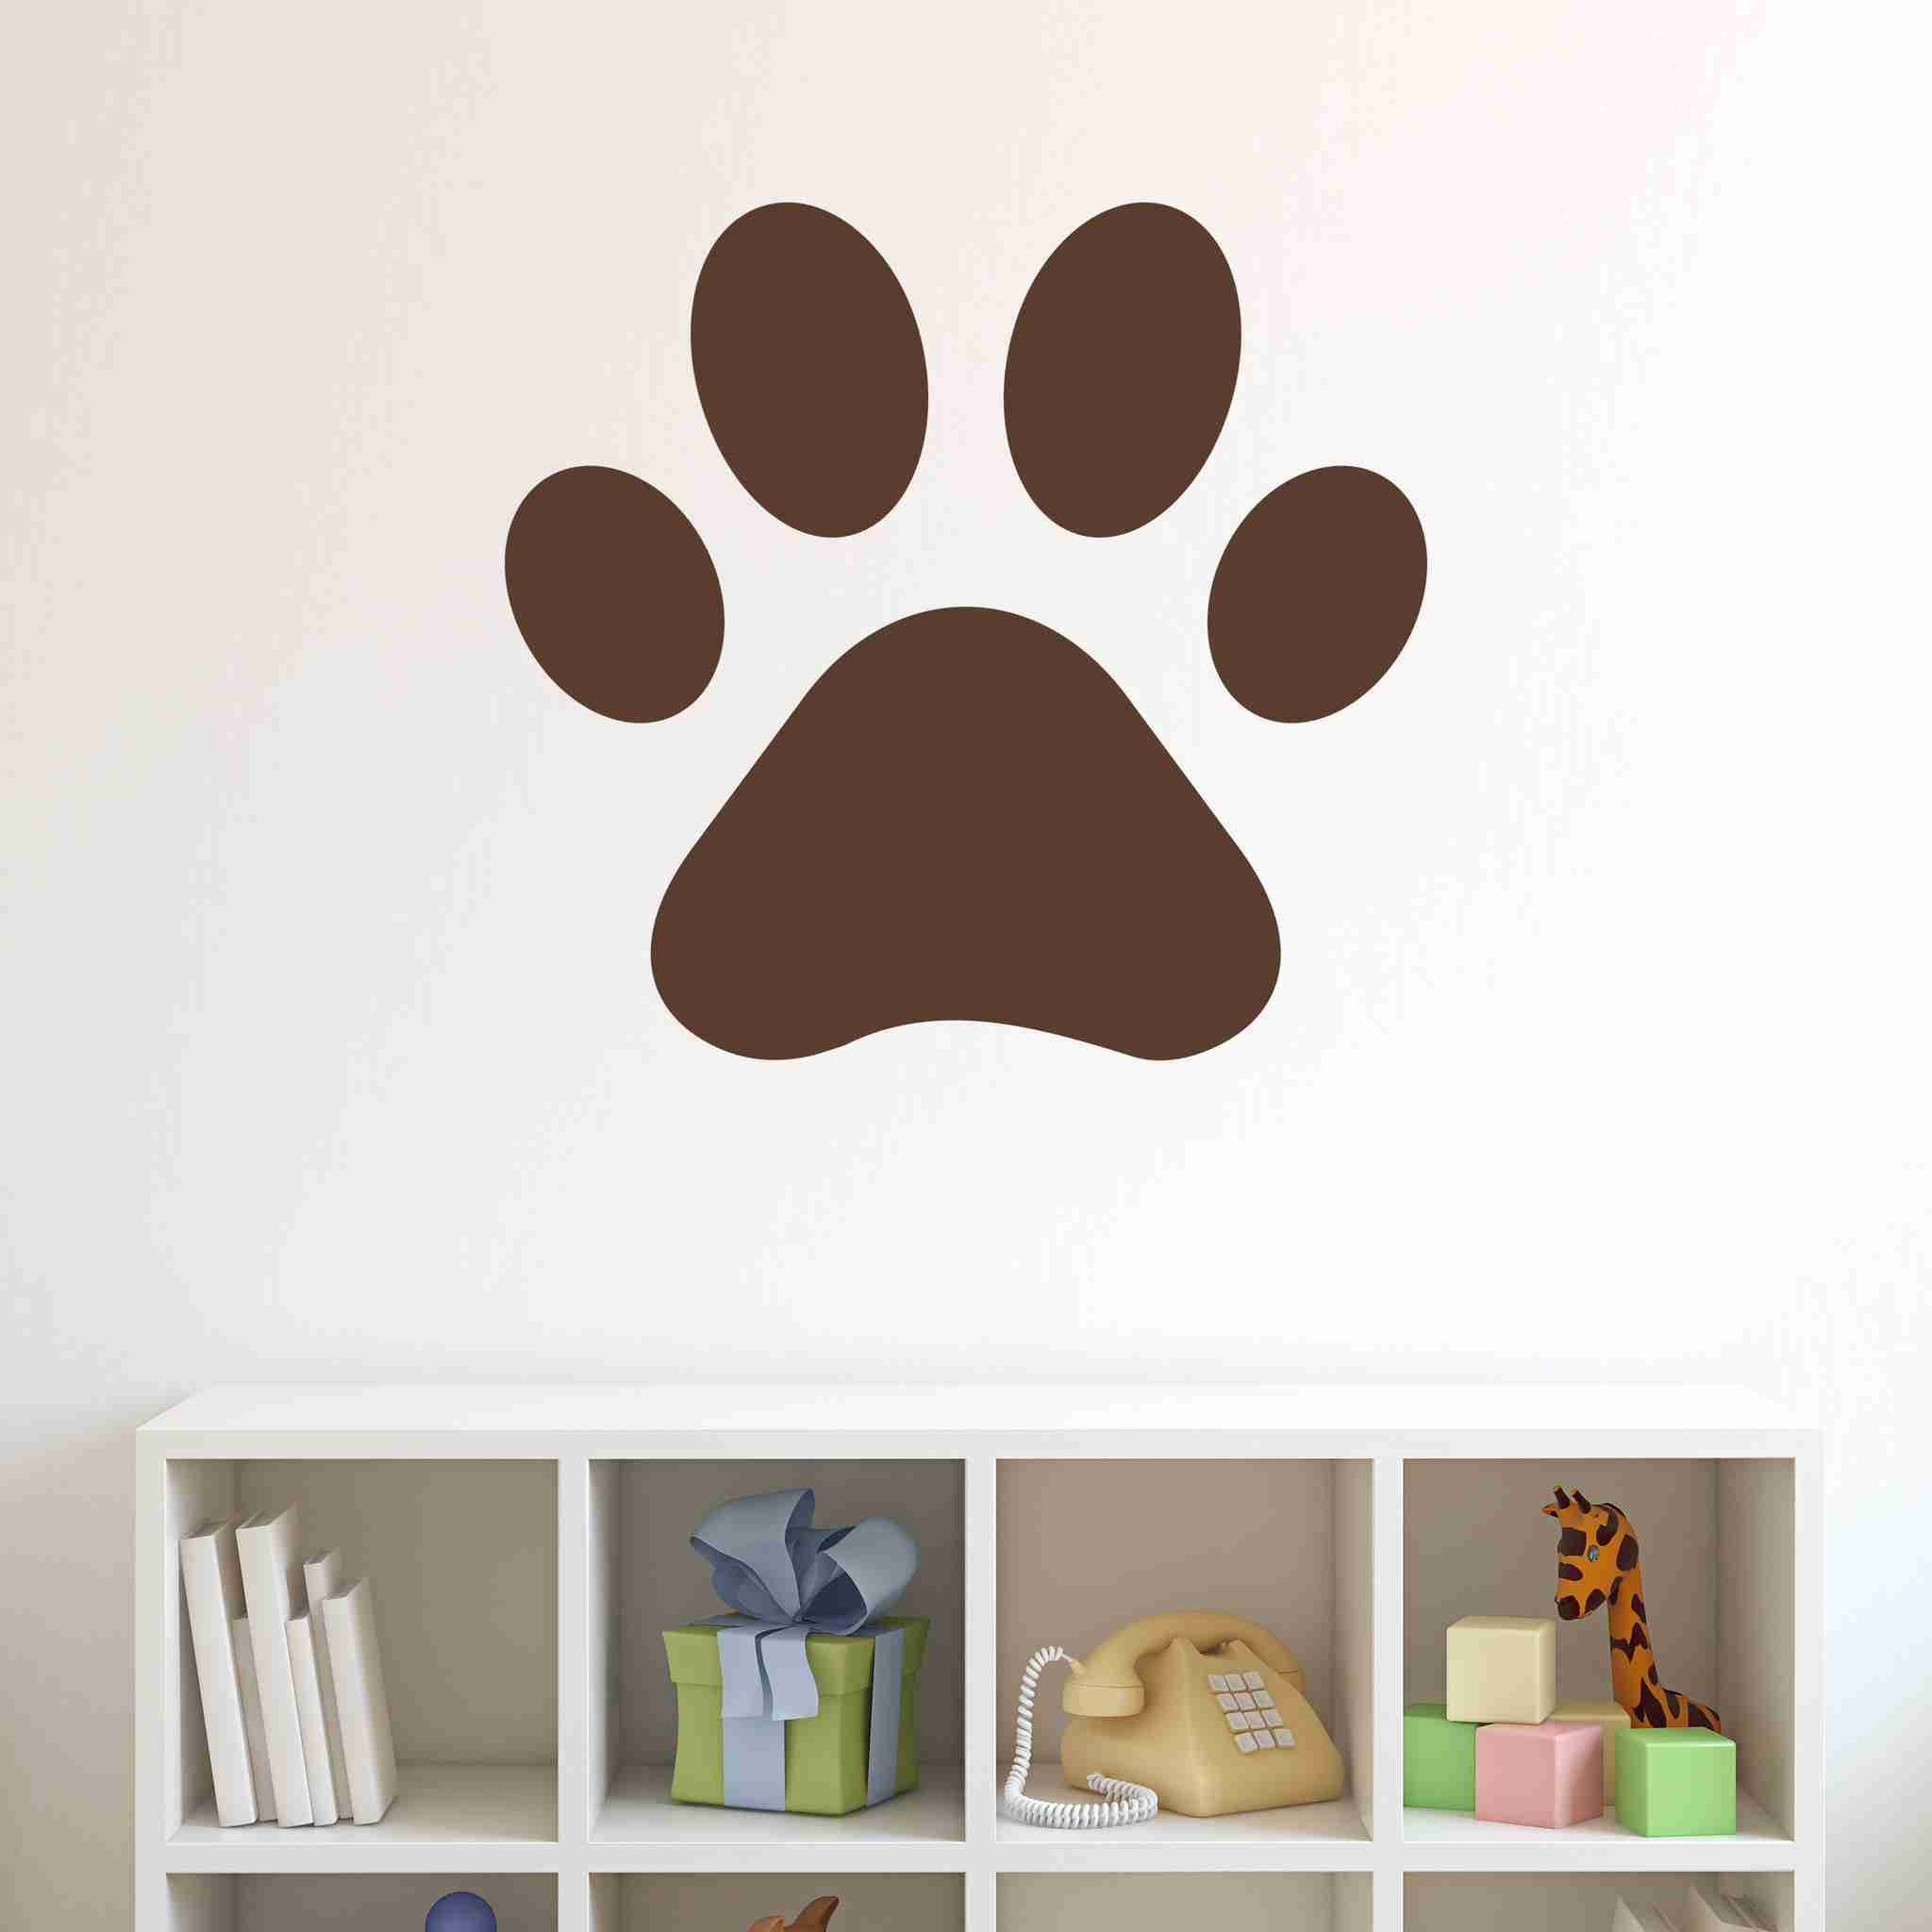 Pawprint Wall Decal Sticker Vinyl Wall Art Nursery Wall Decor - How do you put up vinyl wall decals